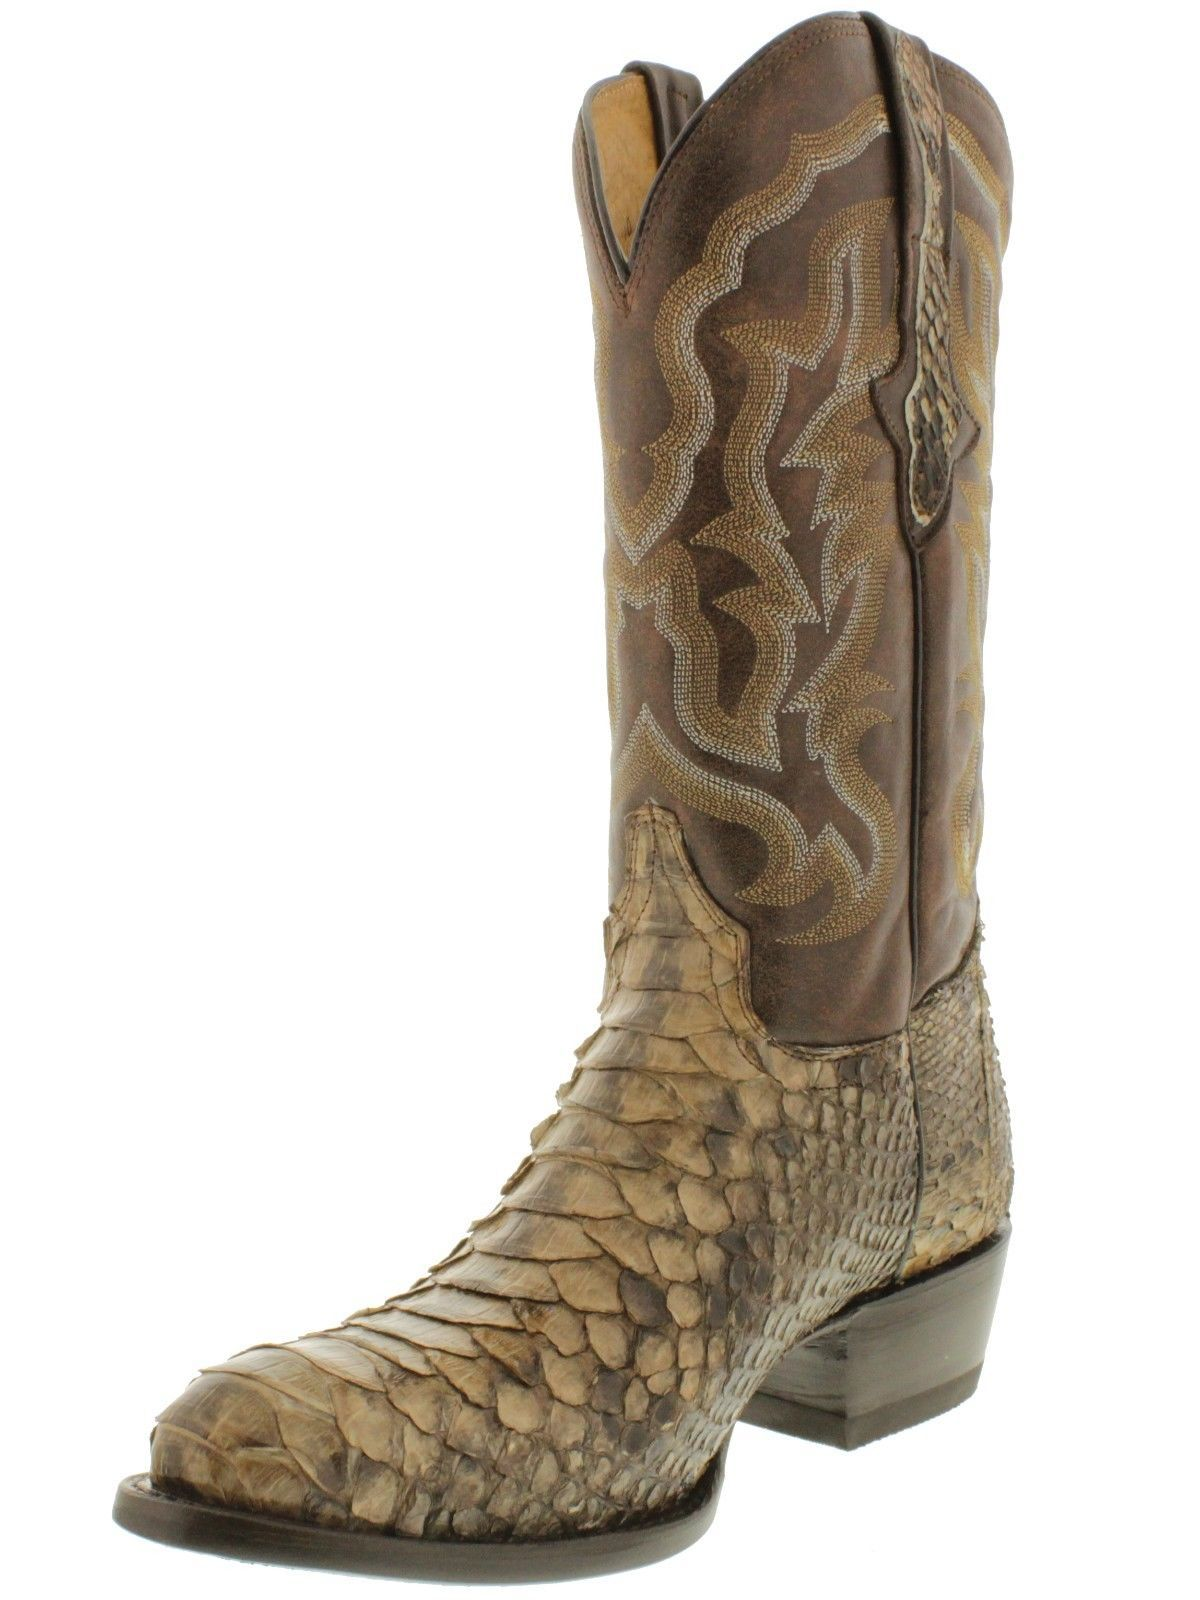 Men's Brown Python Snake Distressed Leather Cowboy Boots Square Toe